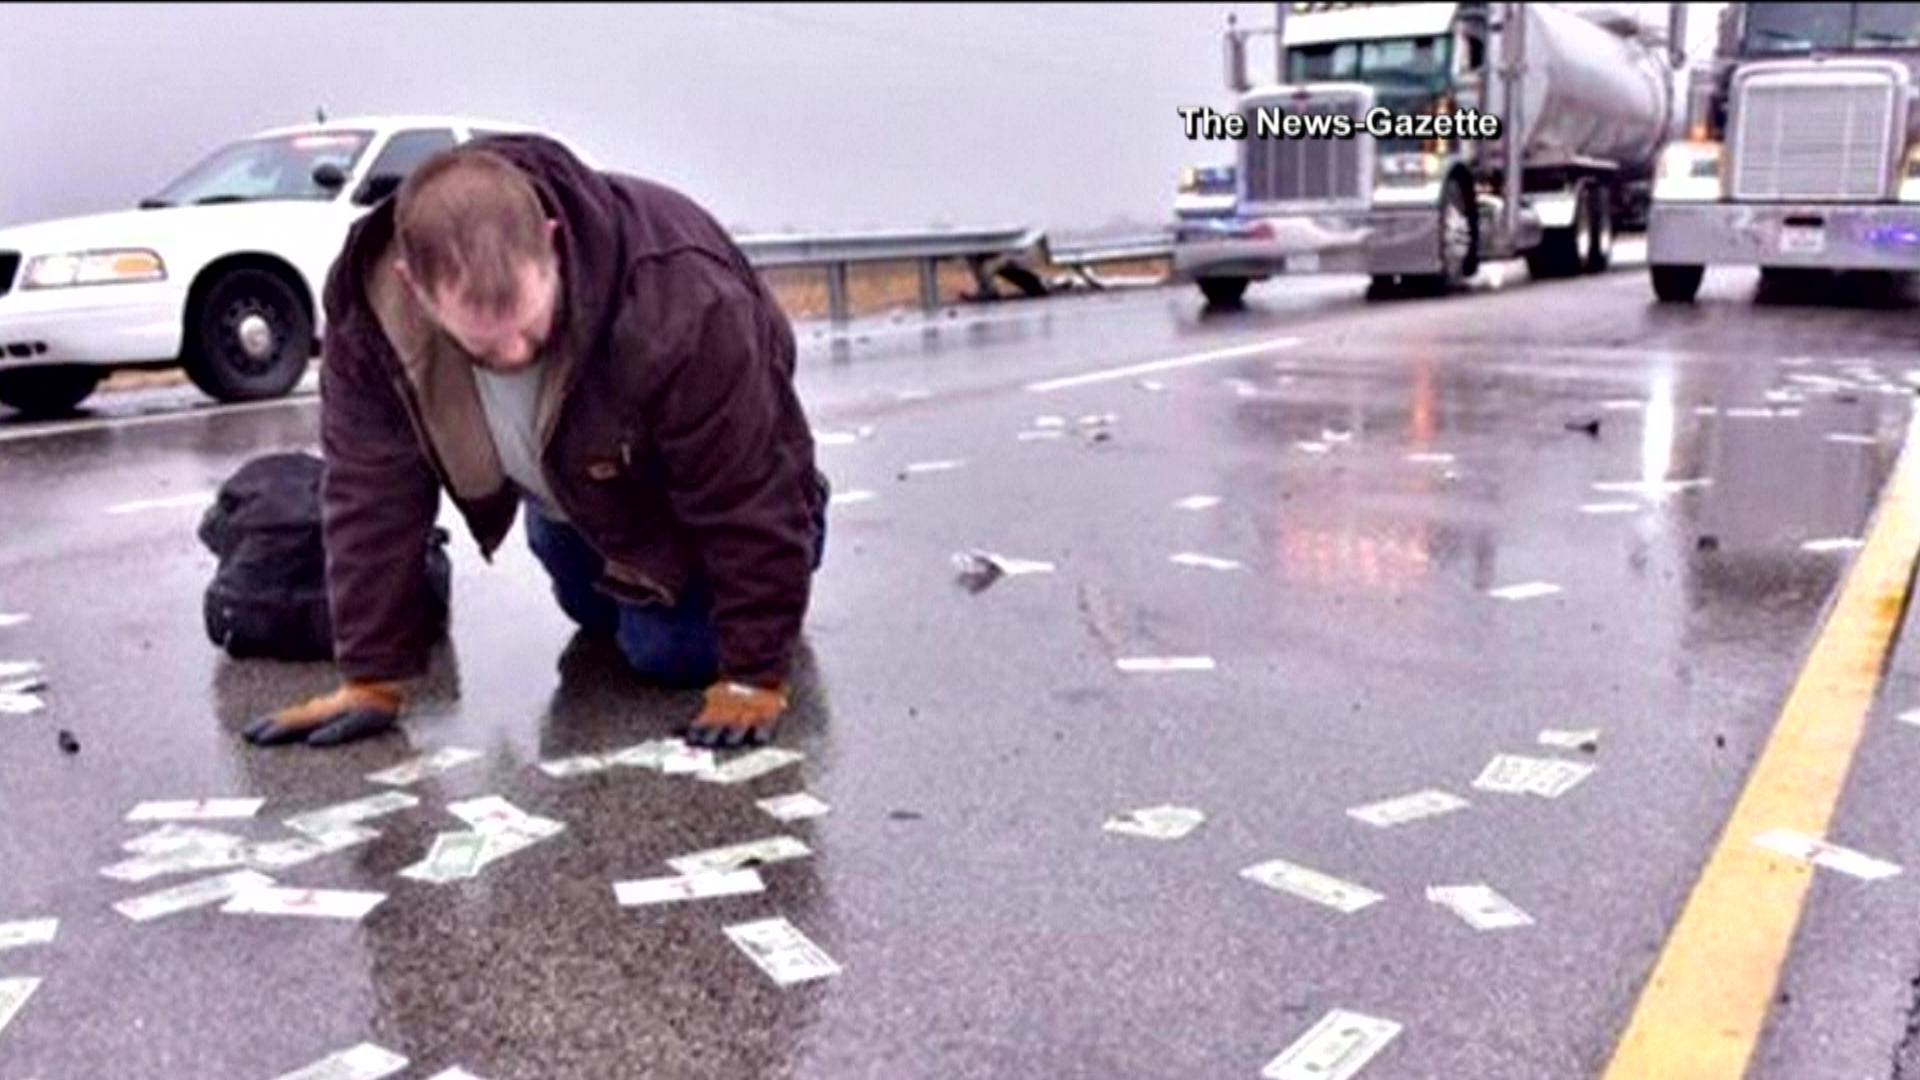 Crash sends cash flying all over IL highway